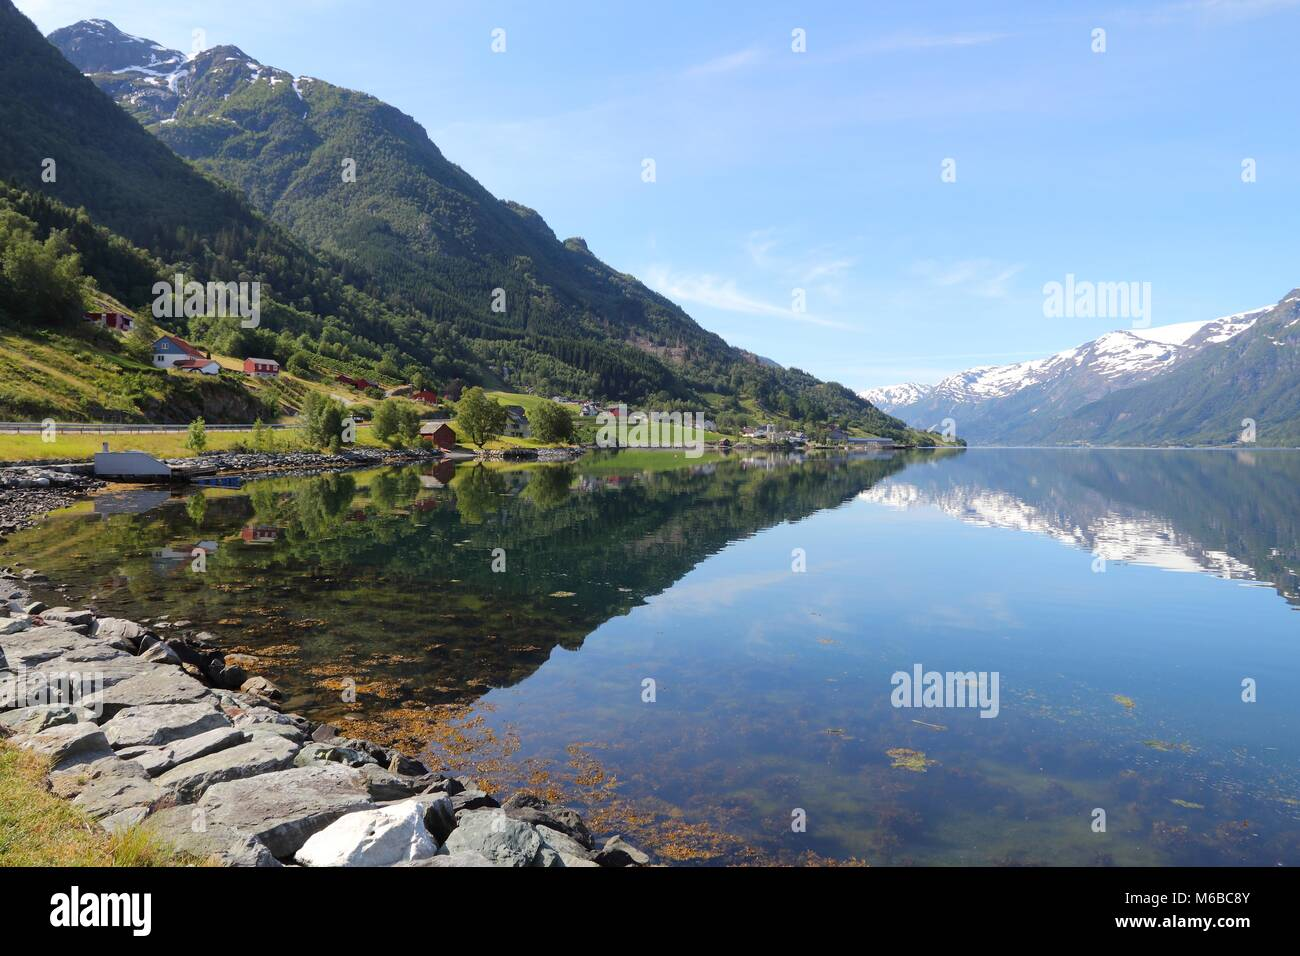 Norway fiord landscape - part of Hardanger Fjord called Sorfjord. Morning view. - Stock Image